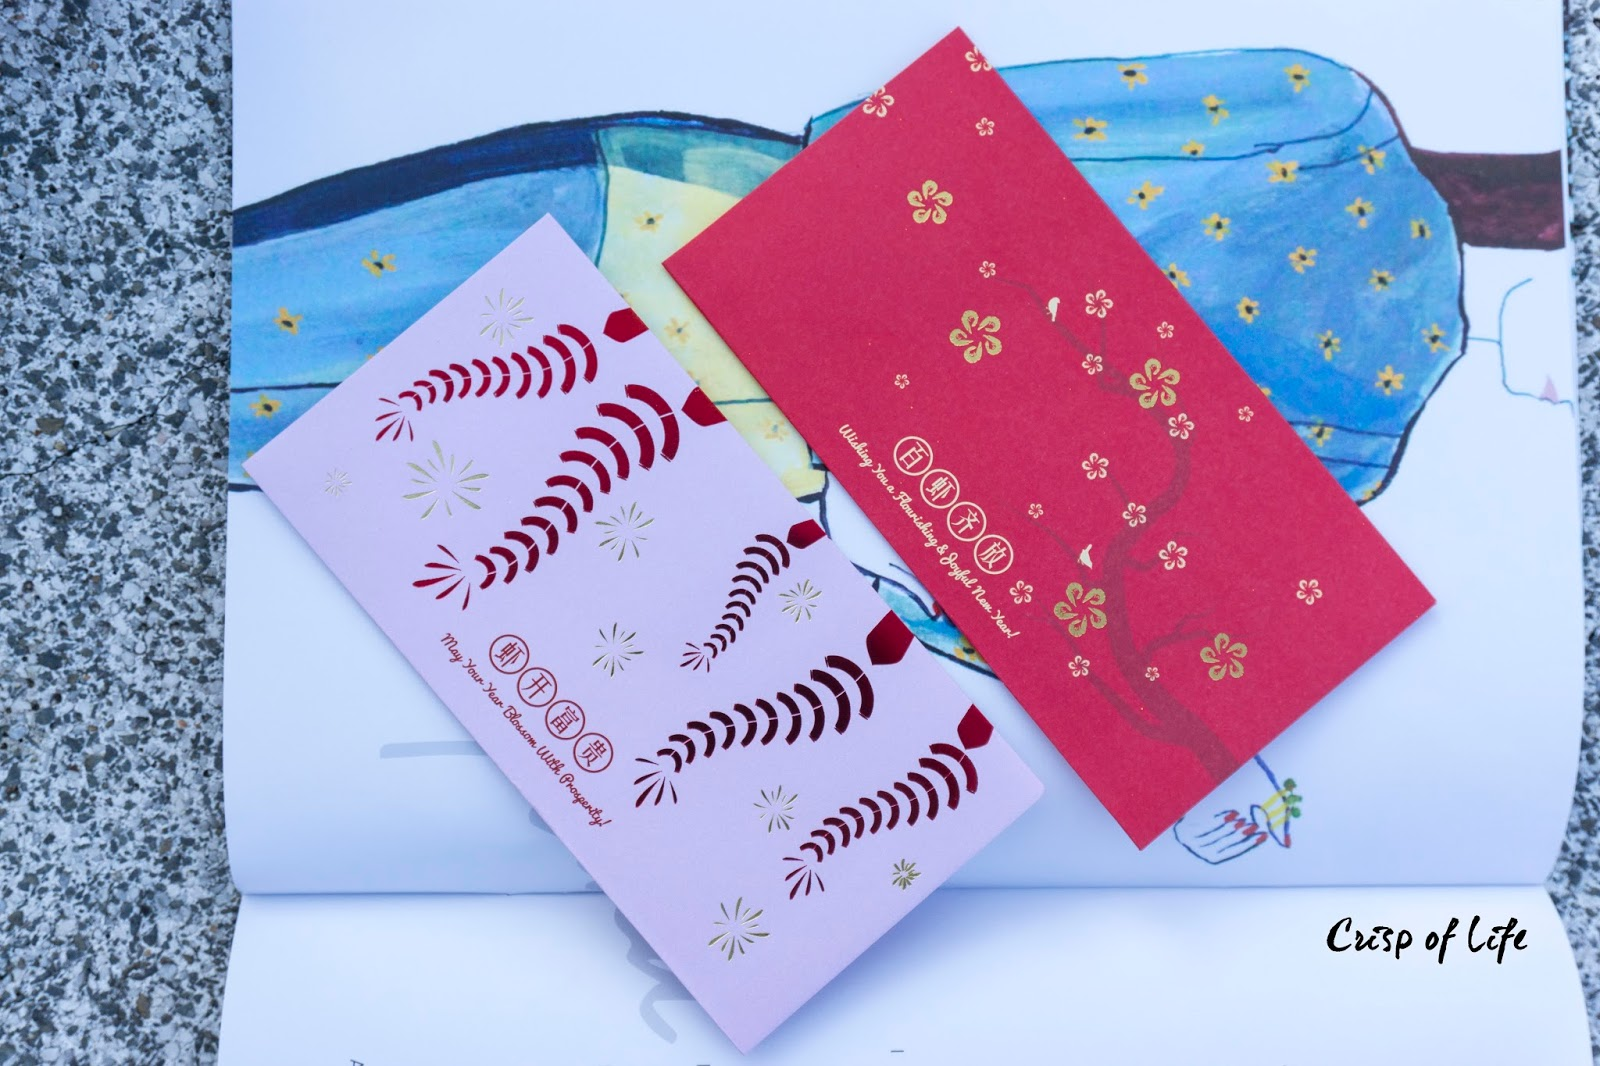 Red Packet Collection Year 2016 猴年红包聚集